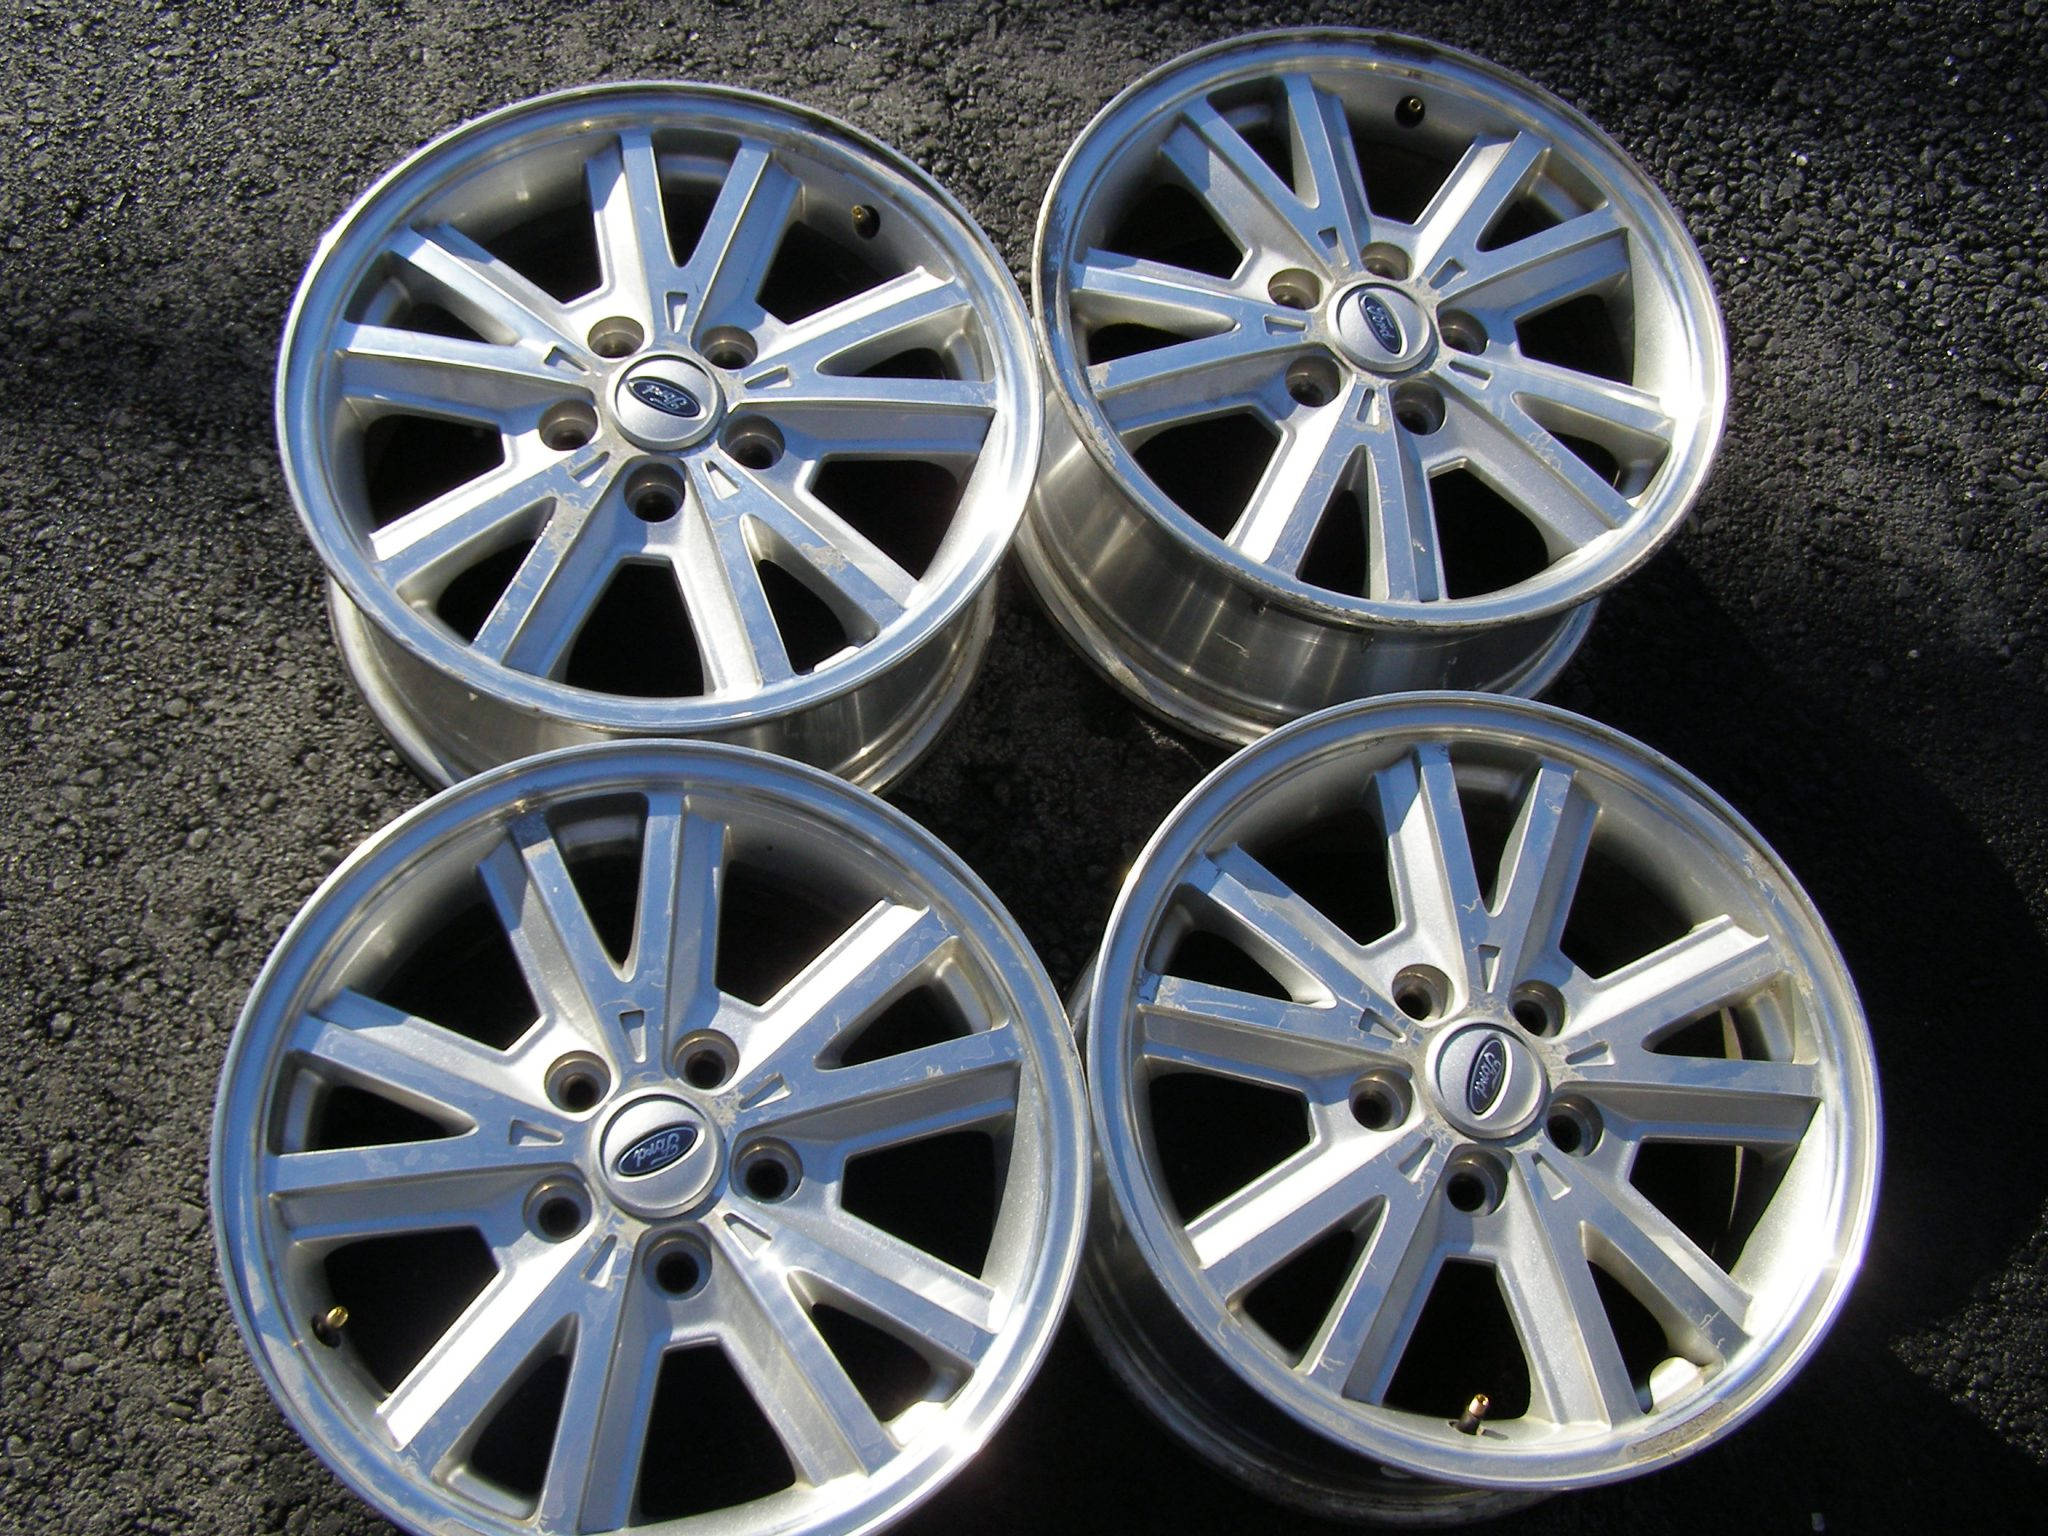 (4) Used 16×7 5×4 1/2, 5 split spoke w/spinner cap, wheels fit 2005 thru  2009 Mustangs. Some oxidation with normal scuffs and scratches make a nice  snow ...